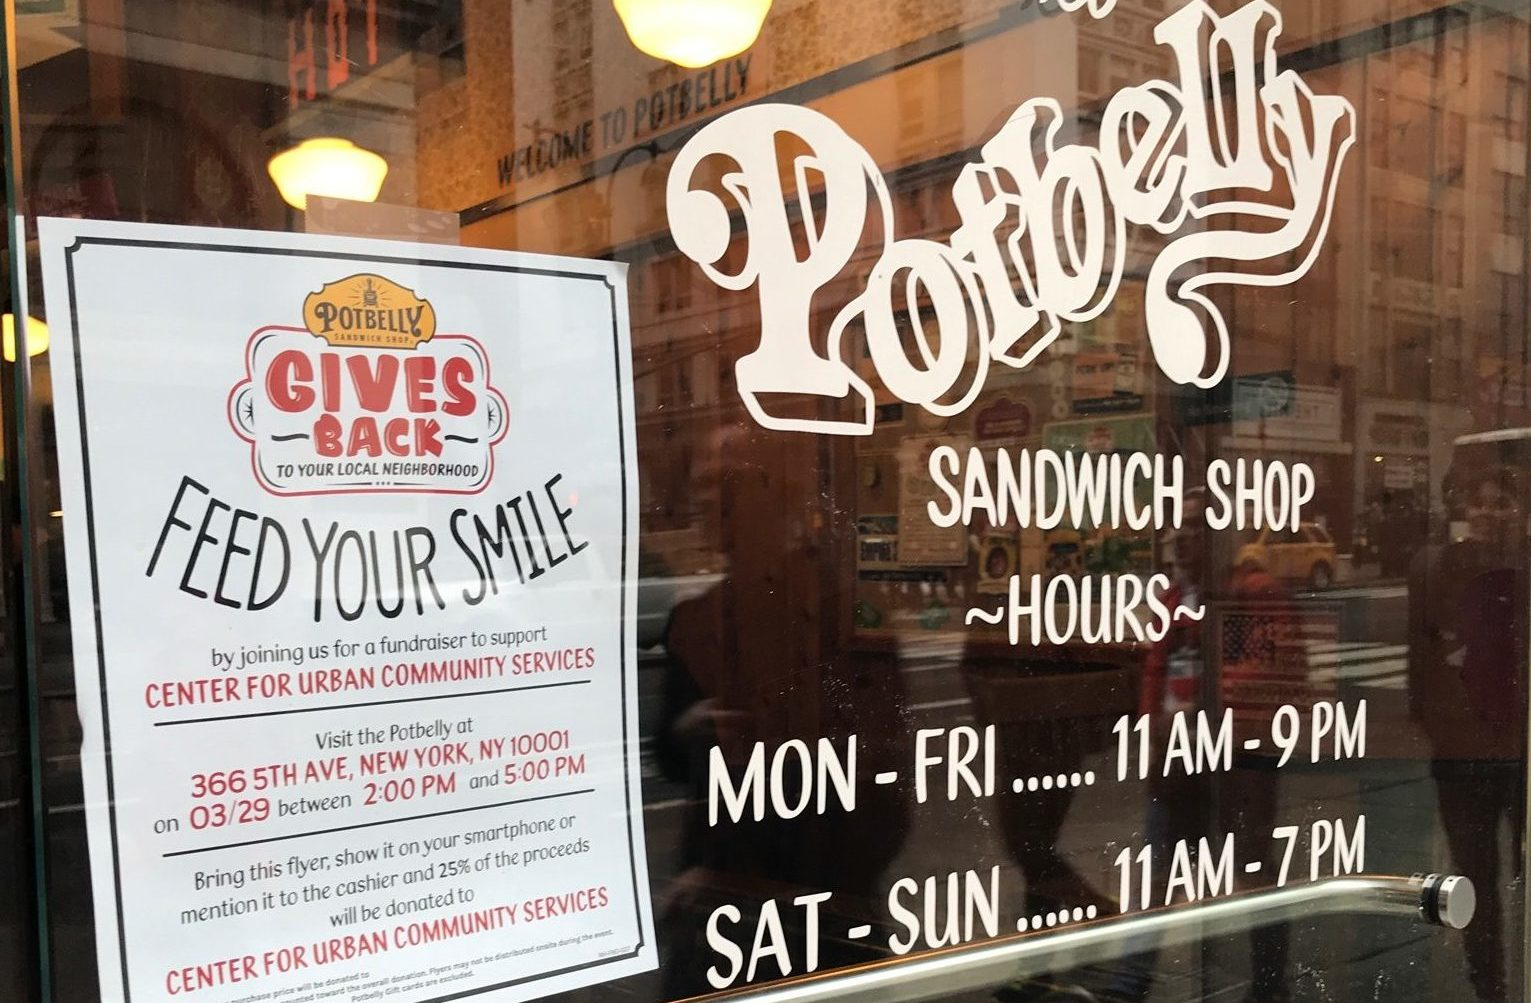 Sandwiches for a Cause: Our Fundraiser with Potbelly